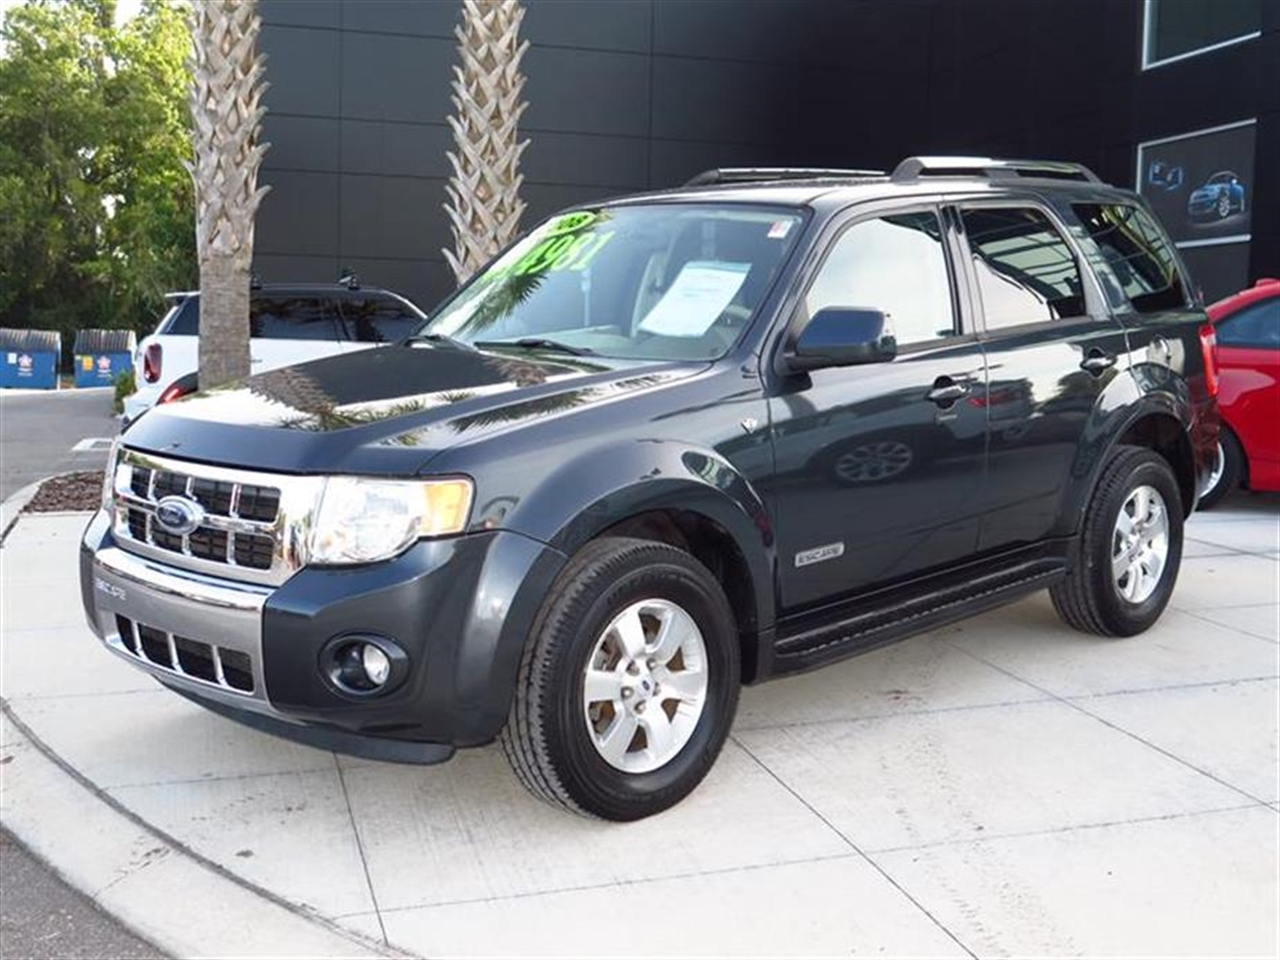 2008 FORD ESCAPE 4WD 4dr V6 Auto Limited 72666 miles 6-way pwr driver seat Air conditioning AMF